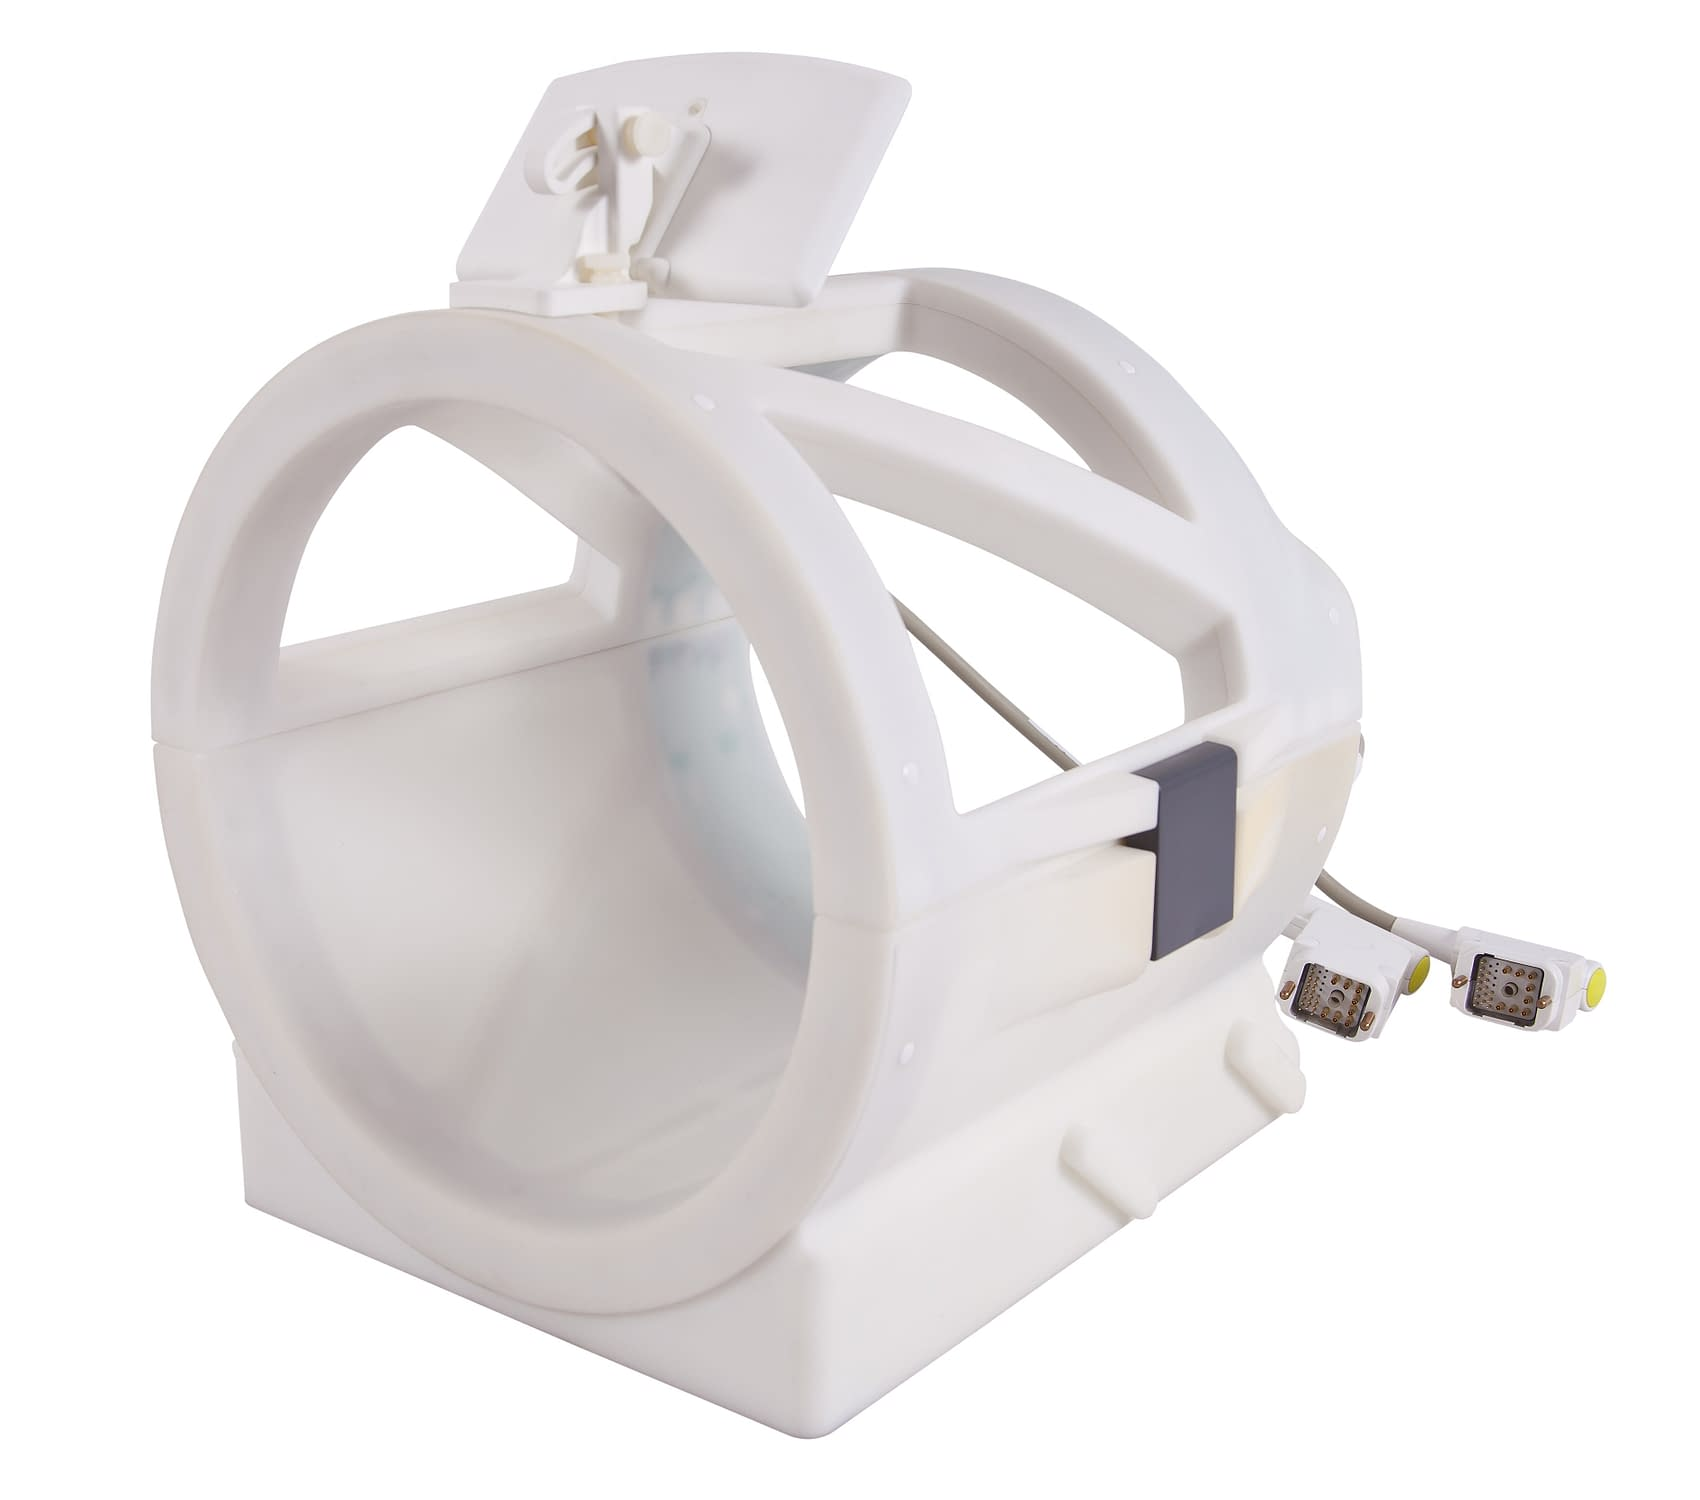 Head RF coil for TMS and/or fMRI applications